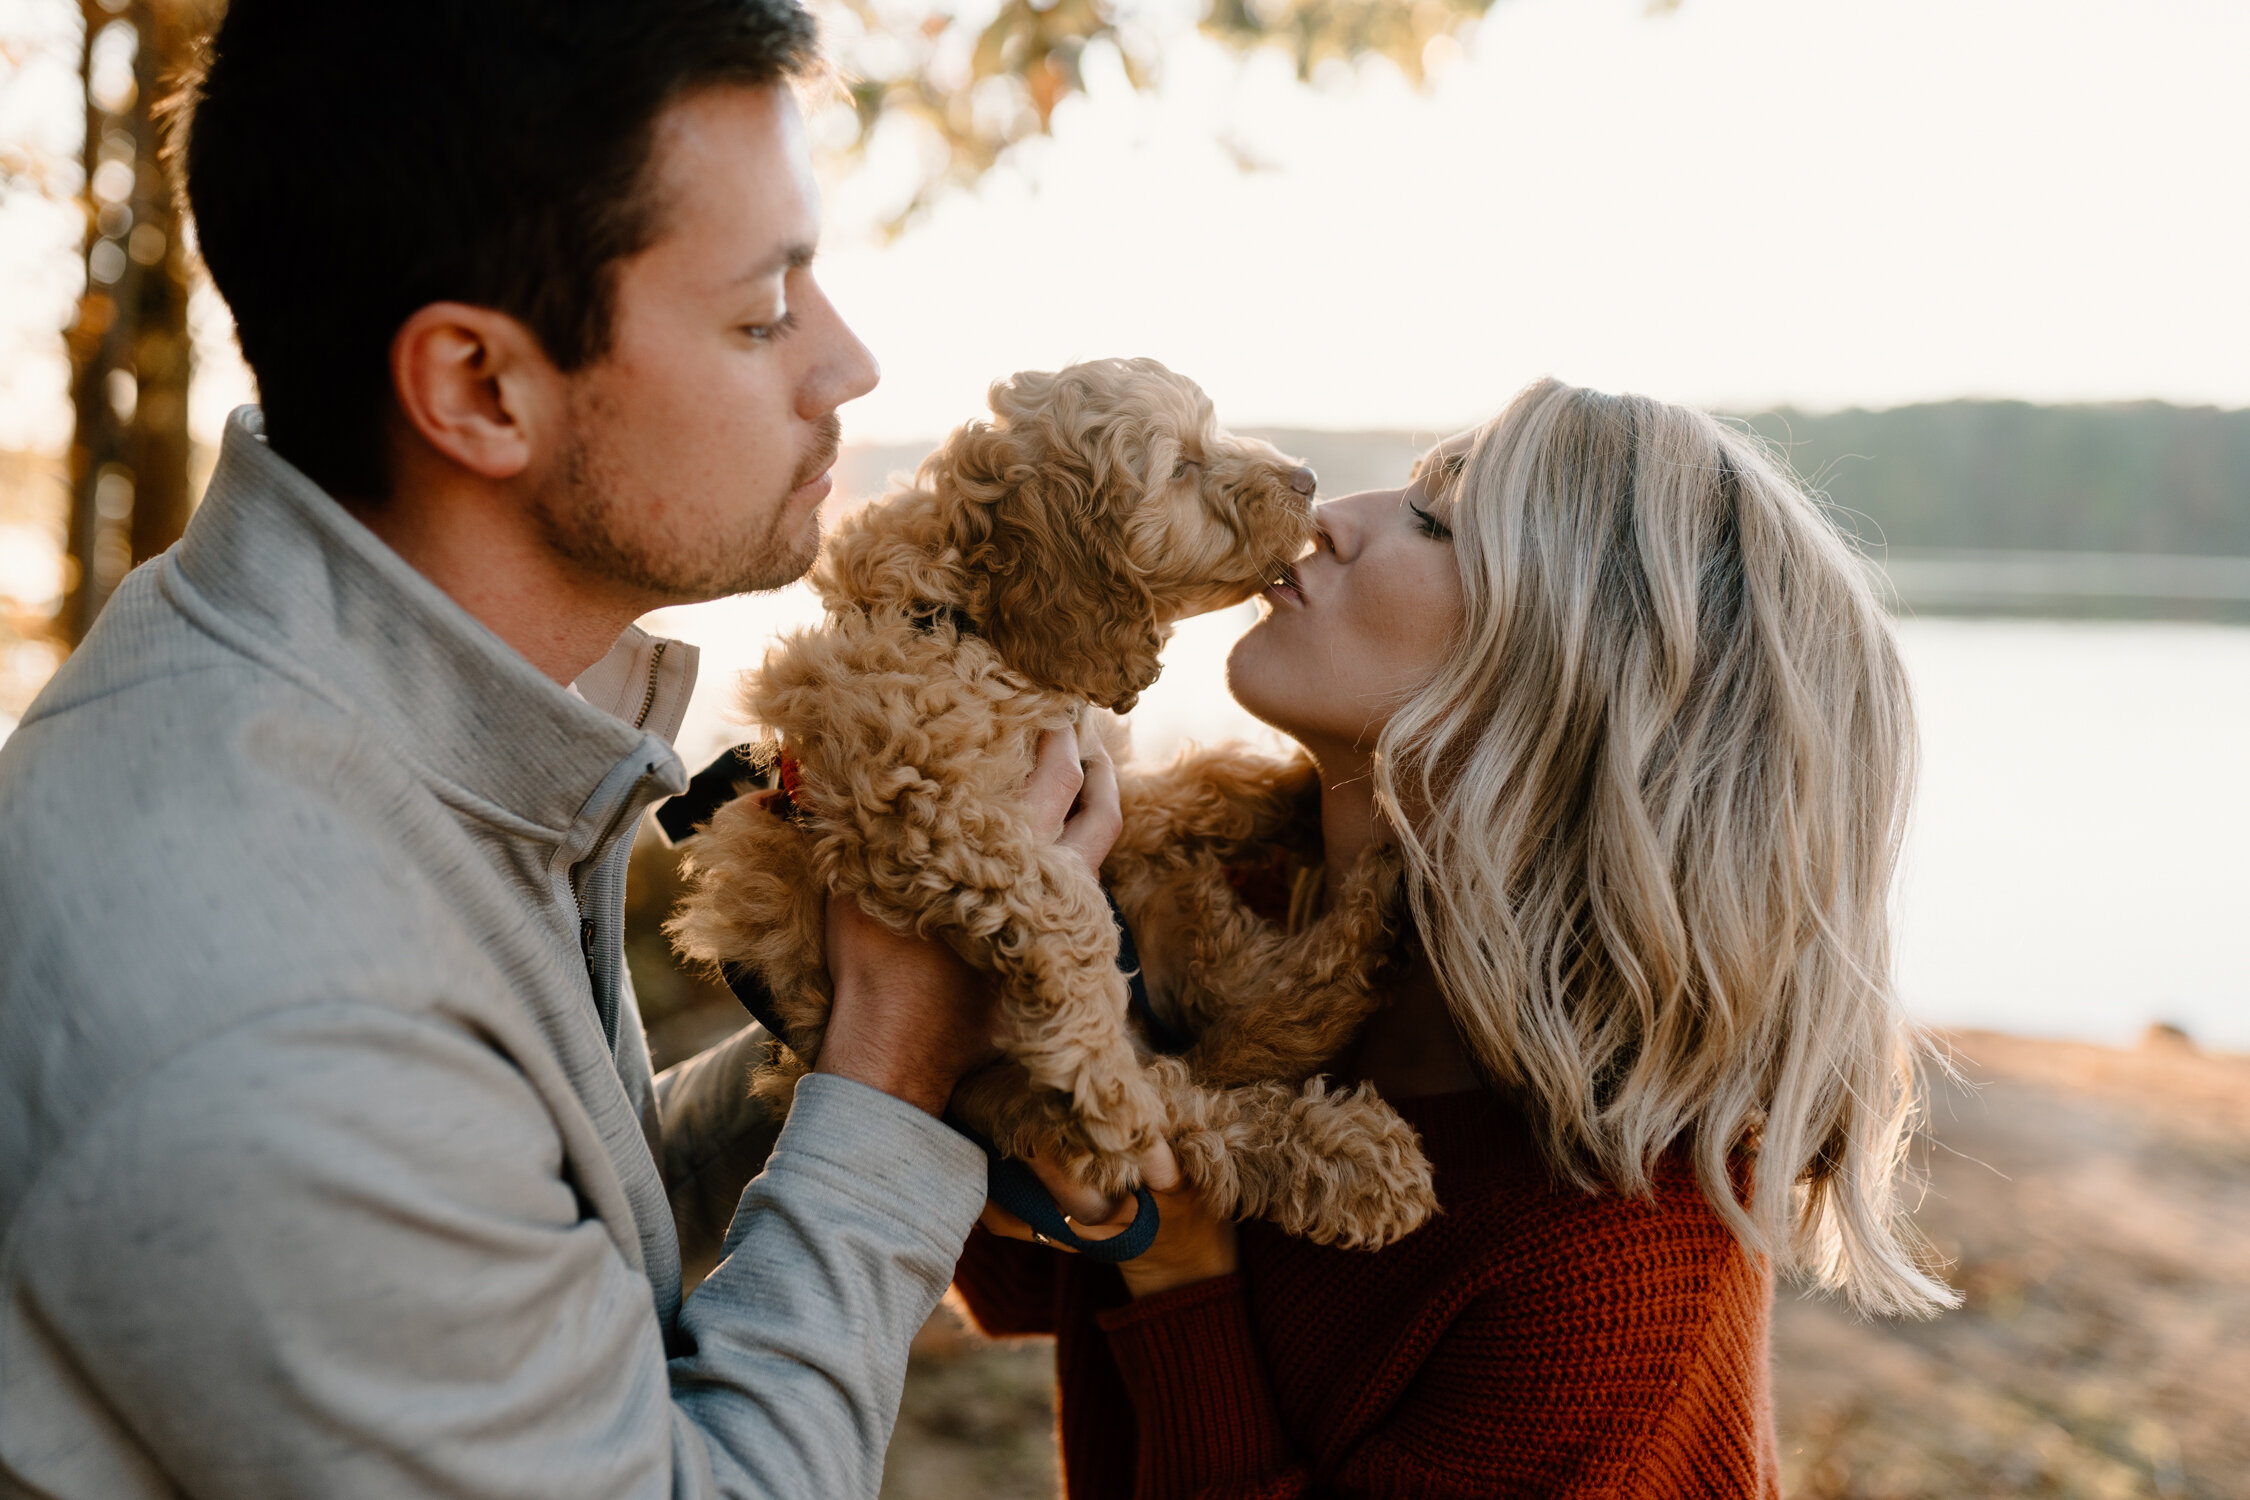 Puppy kisses during fall engagement session at Lake Brandt